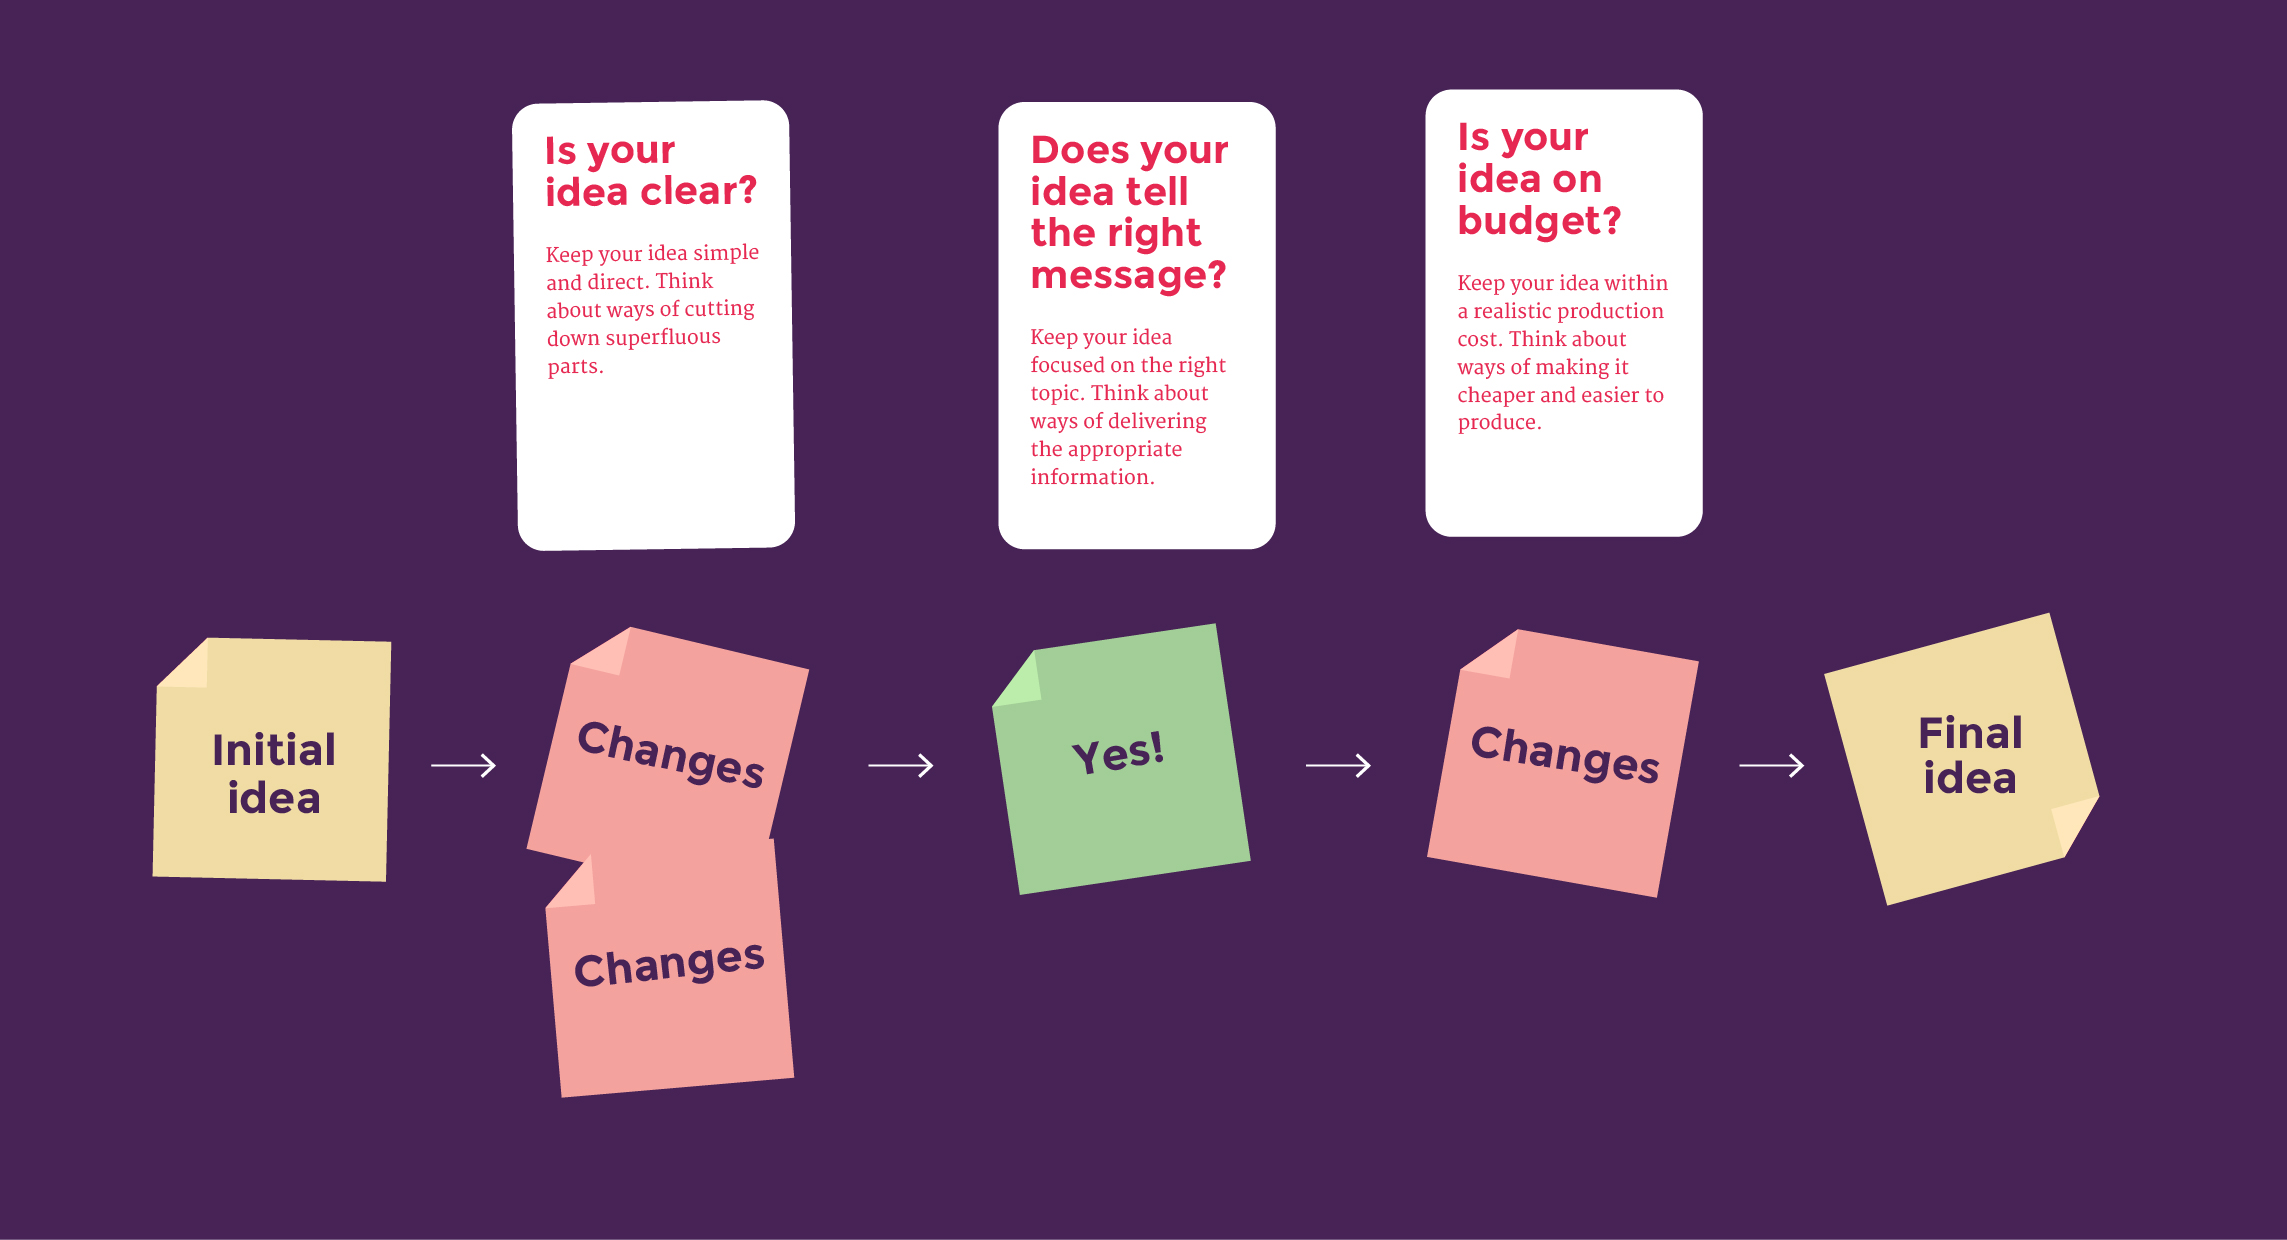 It's hard to decide on ideas. Use this method for decision making tool.